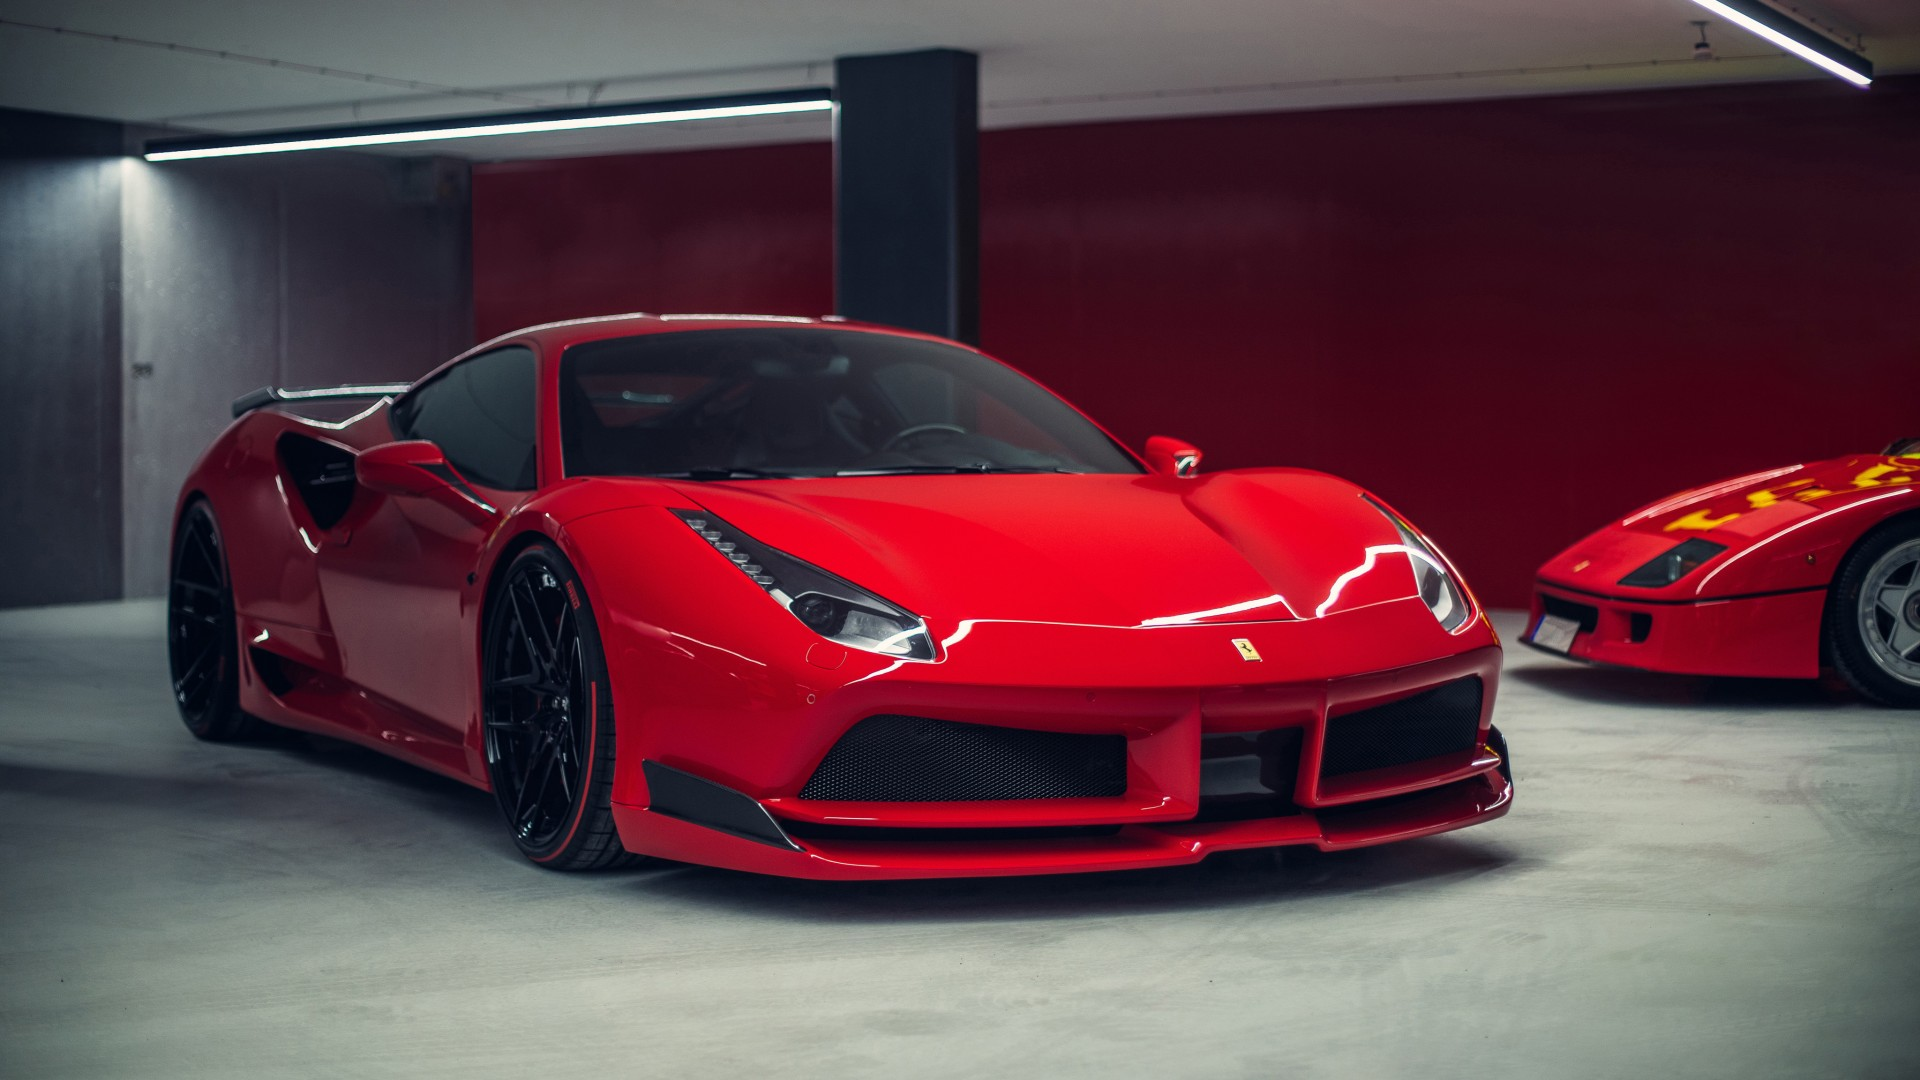 Tuning Car Iphone Wallpaper Novitec N Largo Ferrari 488 Gtb 6 Wallpaper Hd Car